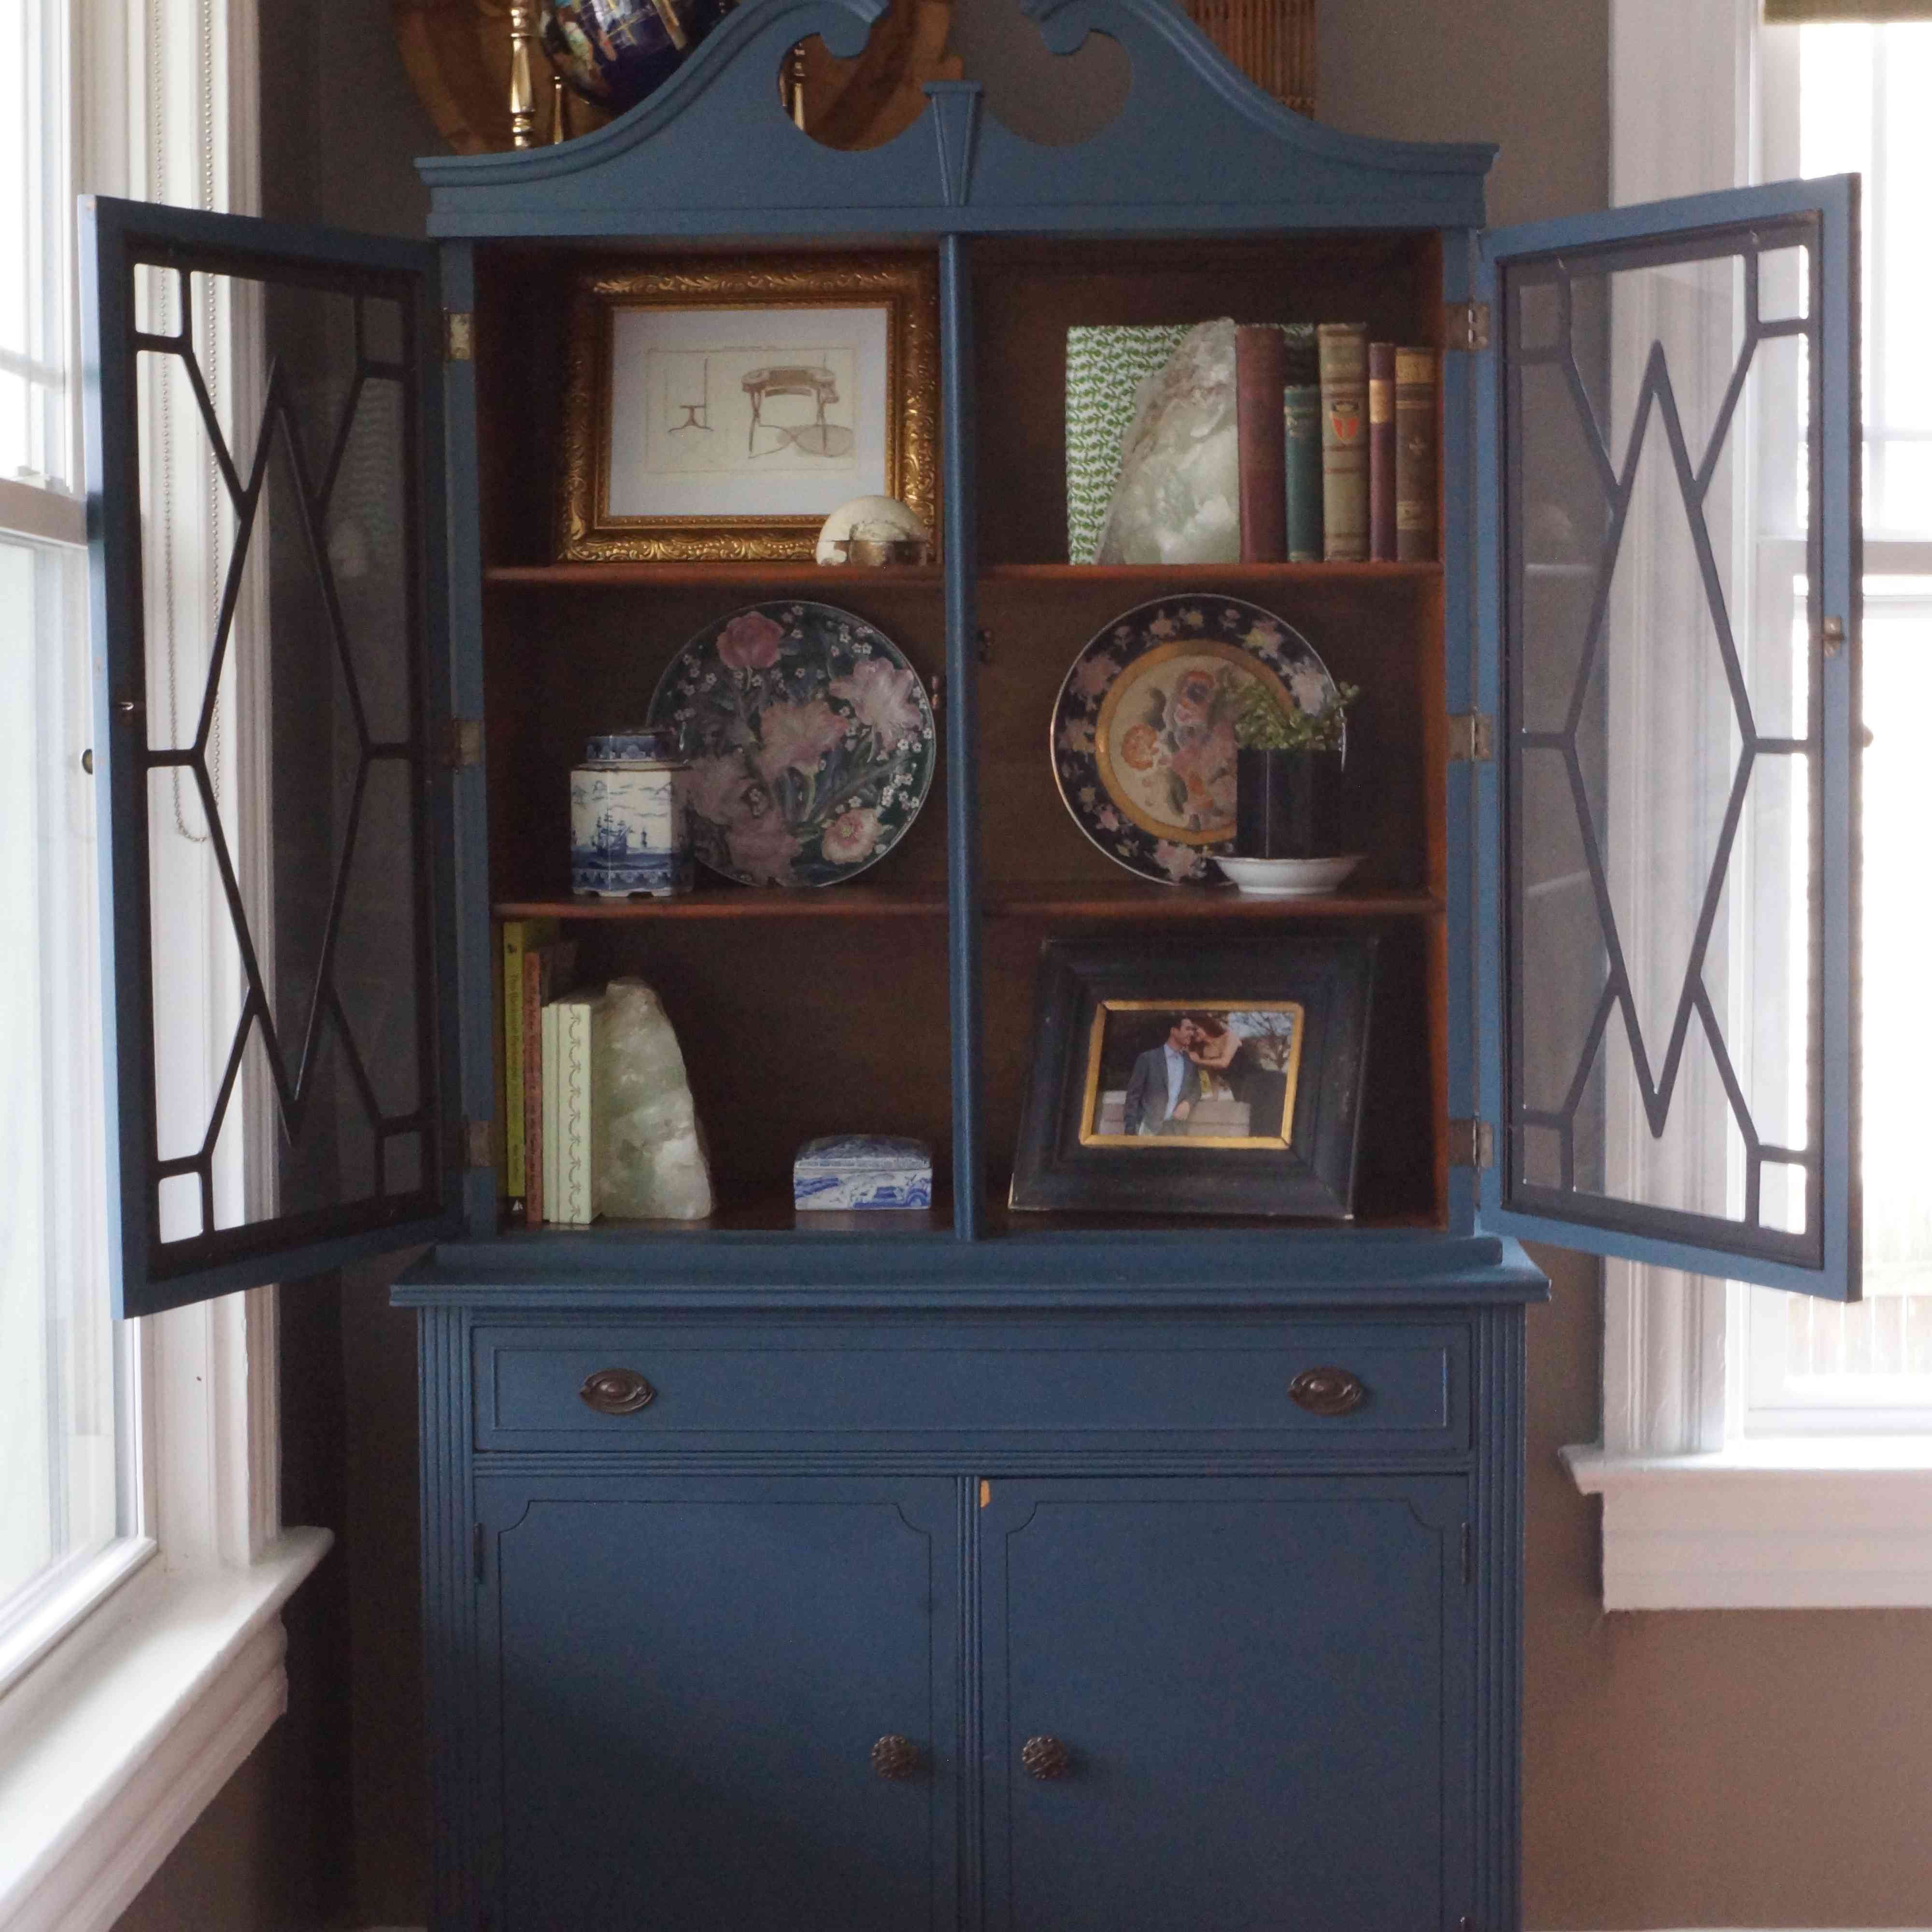 Blue cabinet in a home